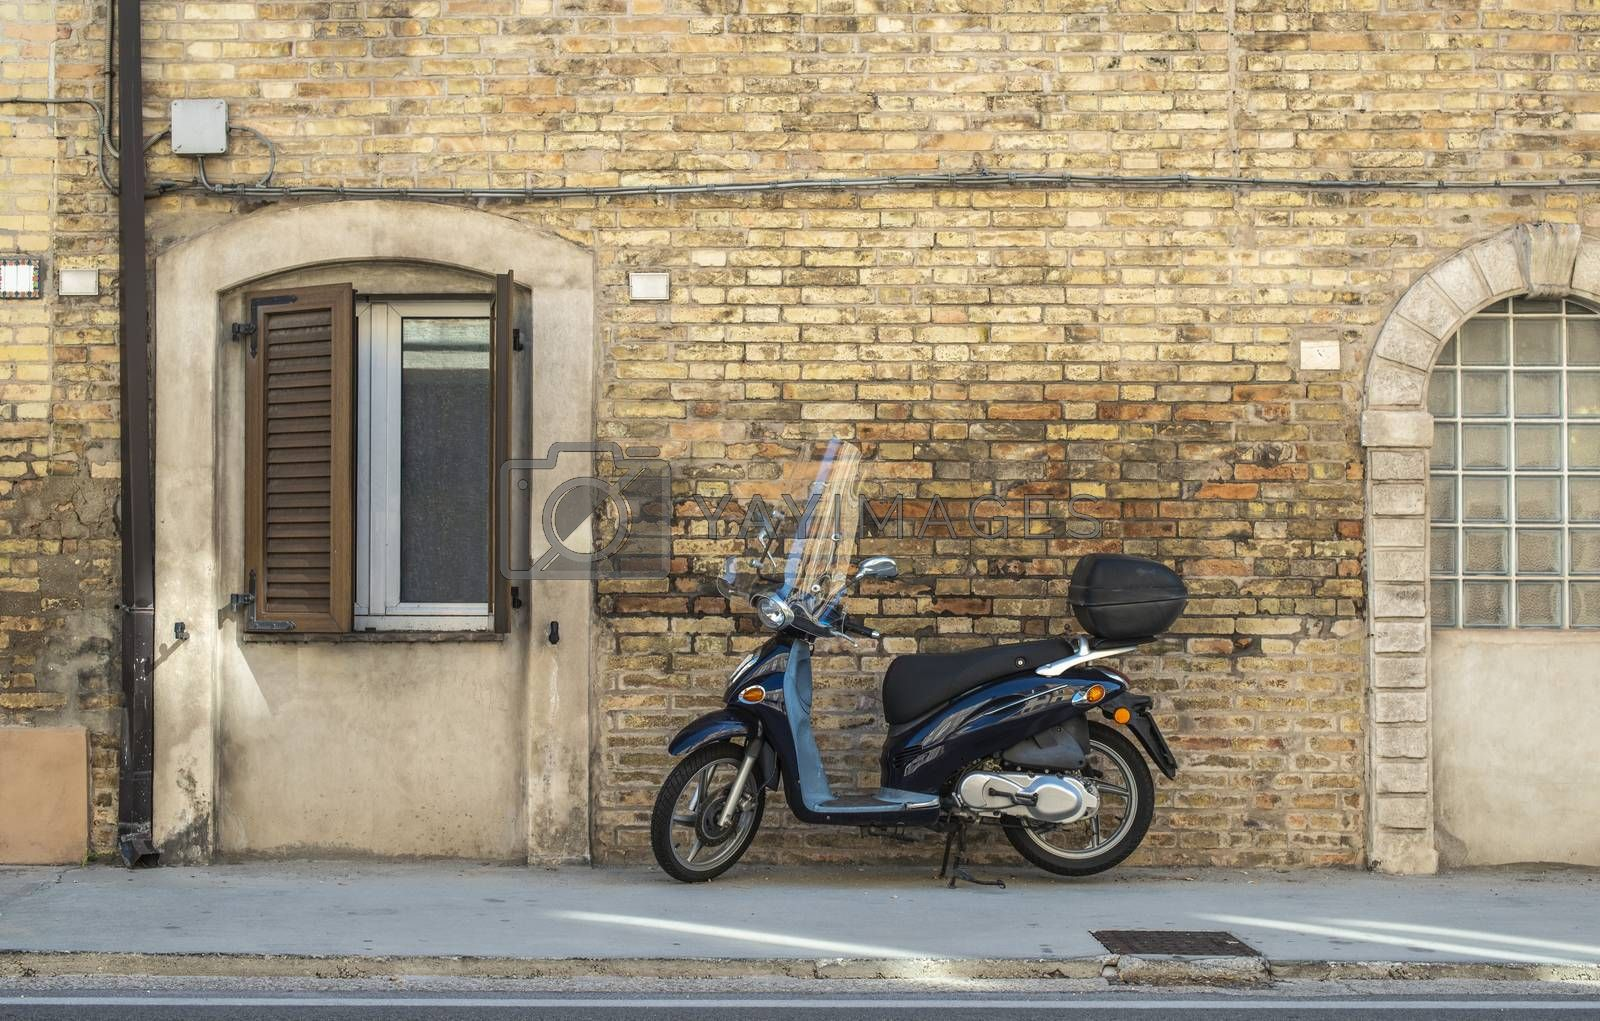 Typical italian motorbike in front of old house facade. Traditional bike and ancient mediterranean architecture.